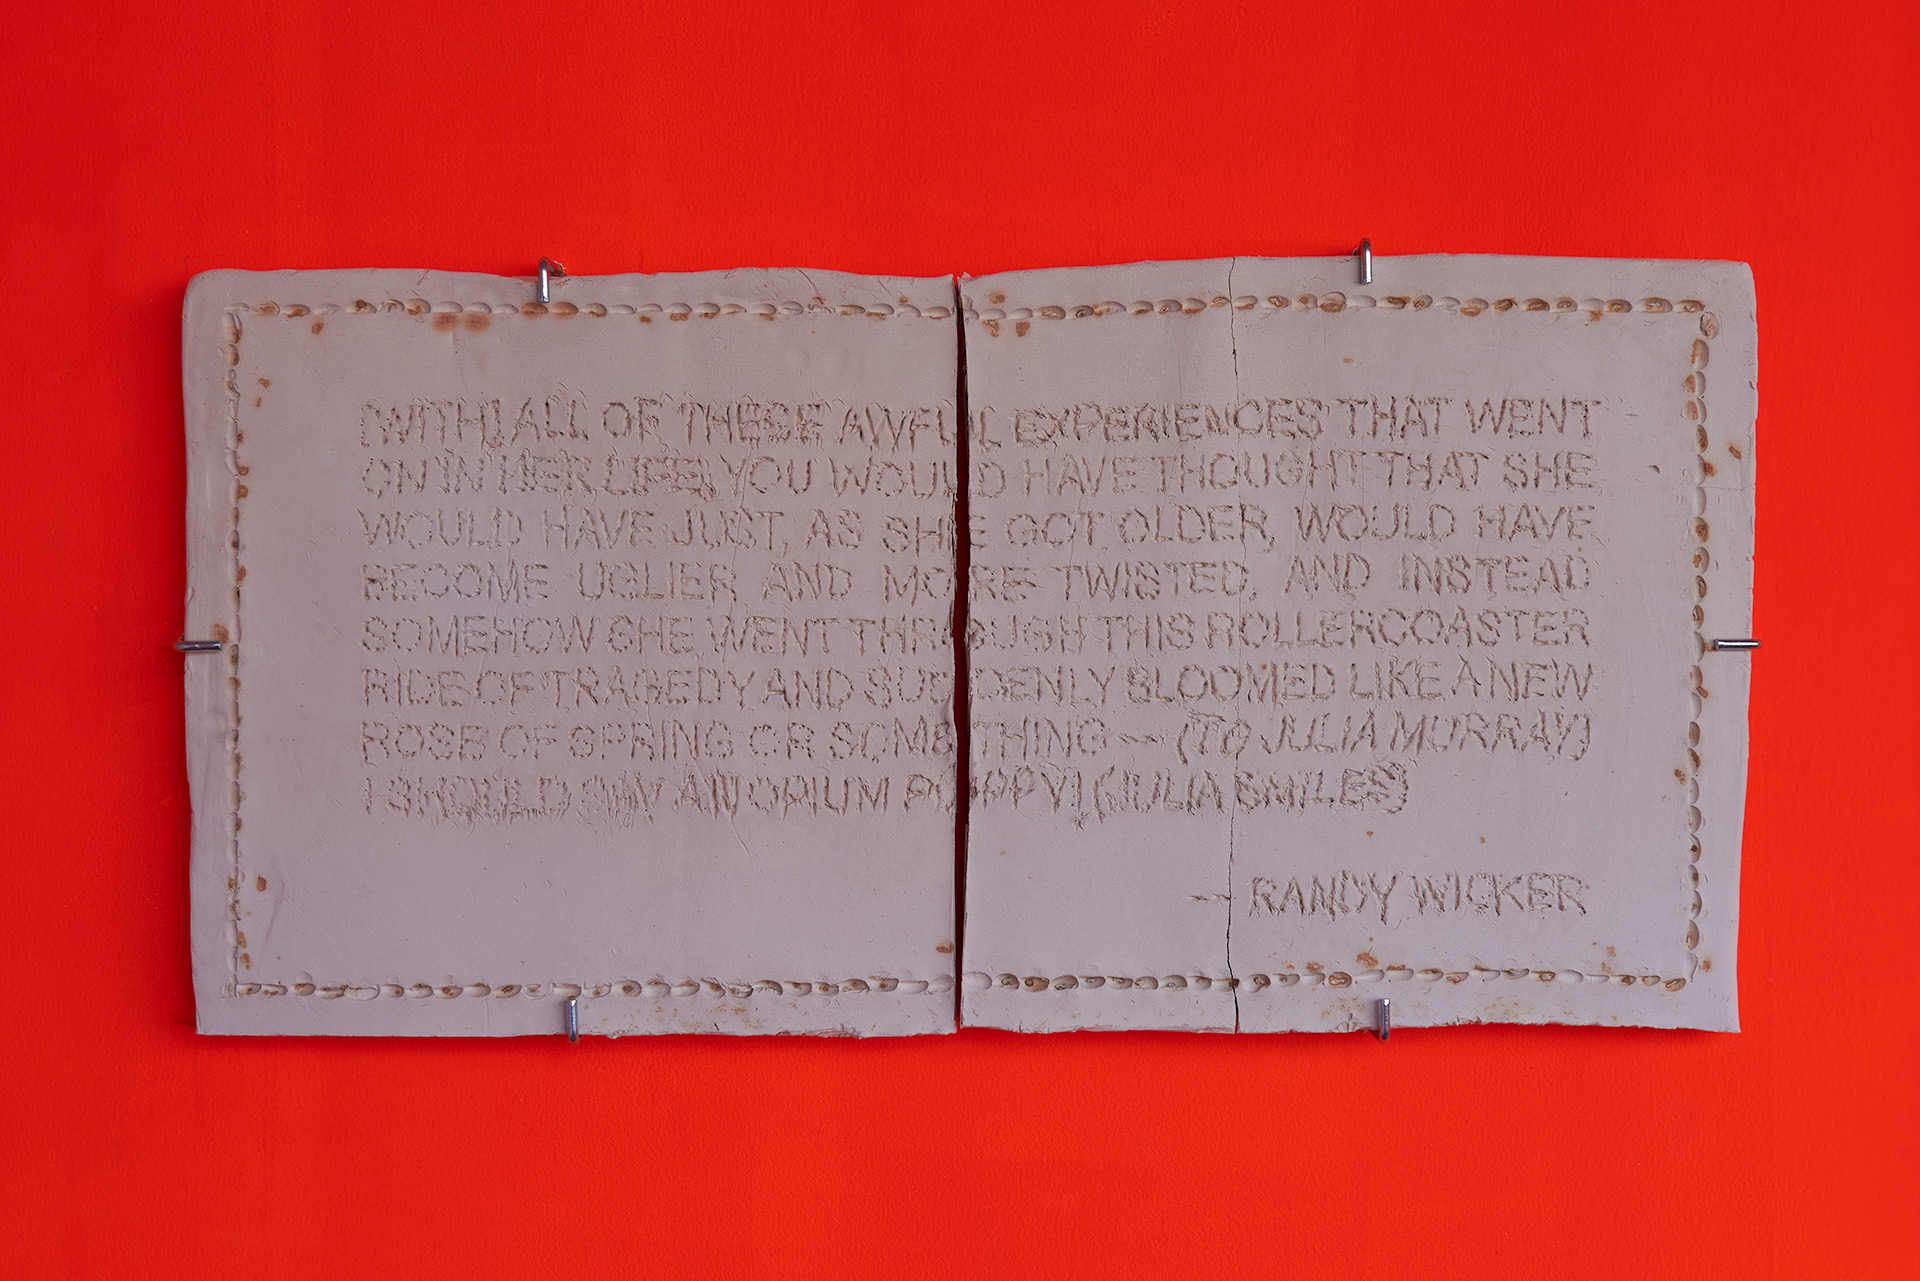 A fired ceramic slab inscribed with a quote by Randy Wicker on a bright orange wall.